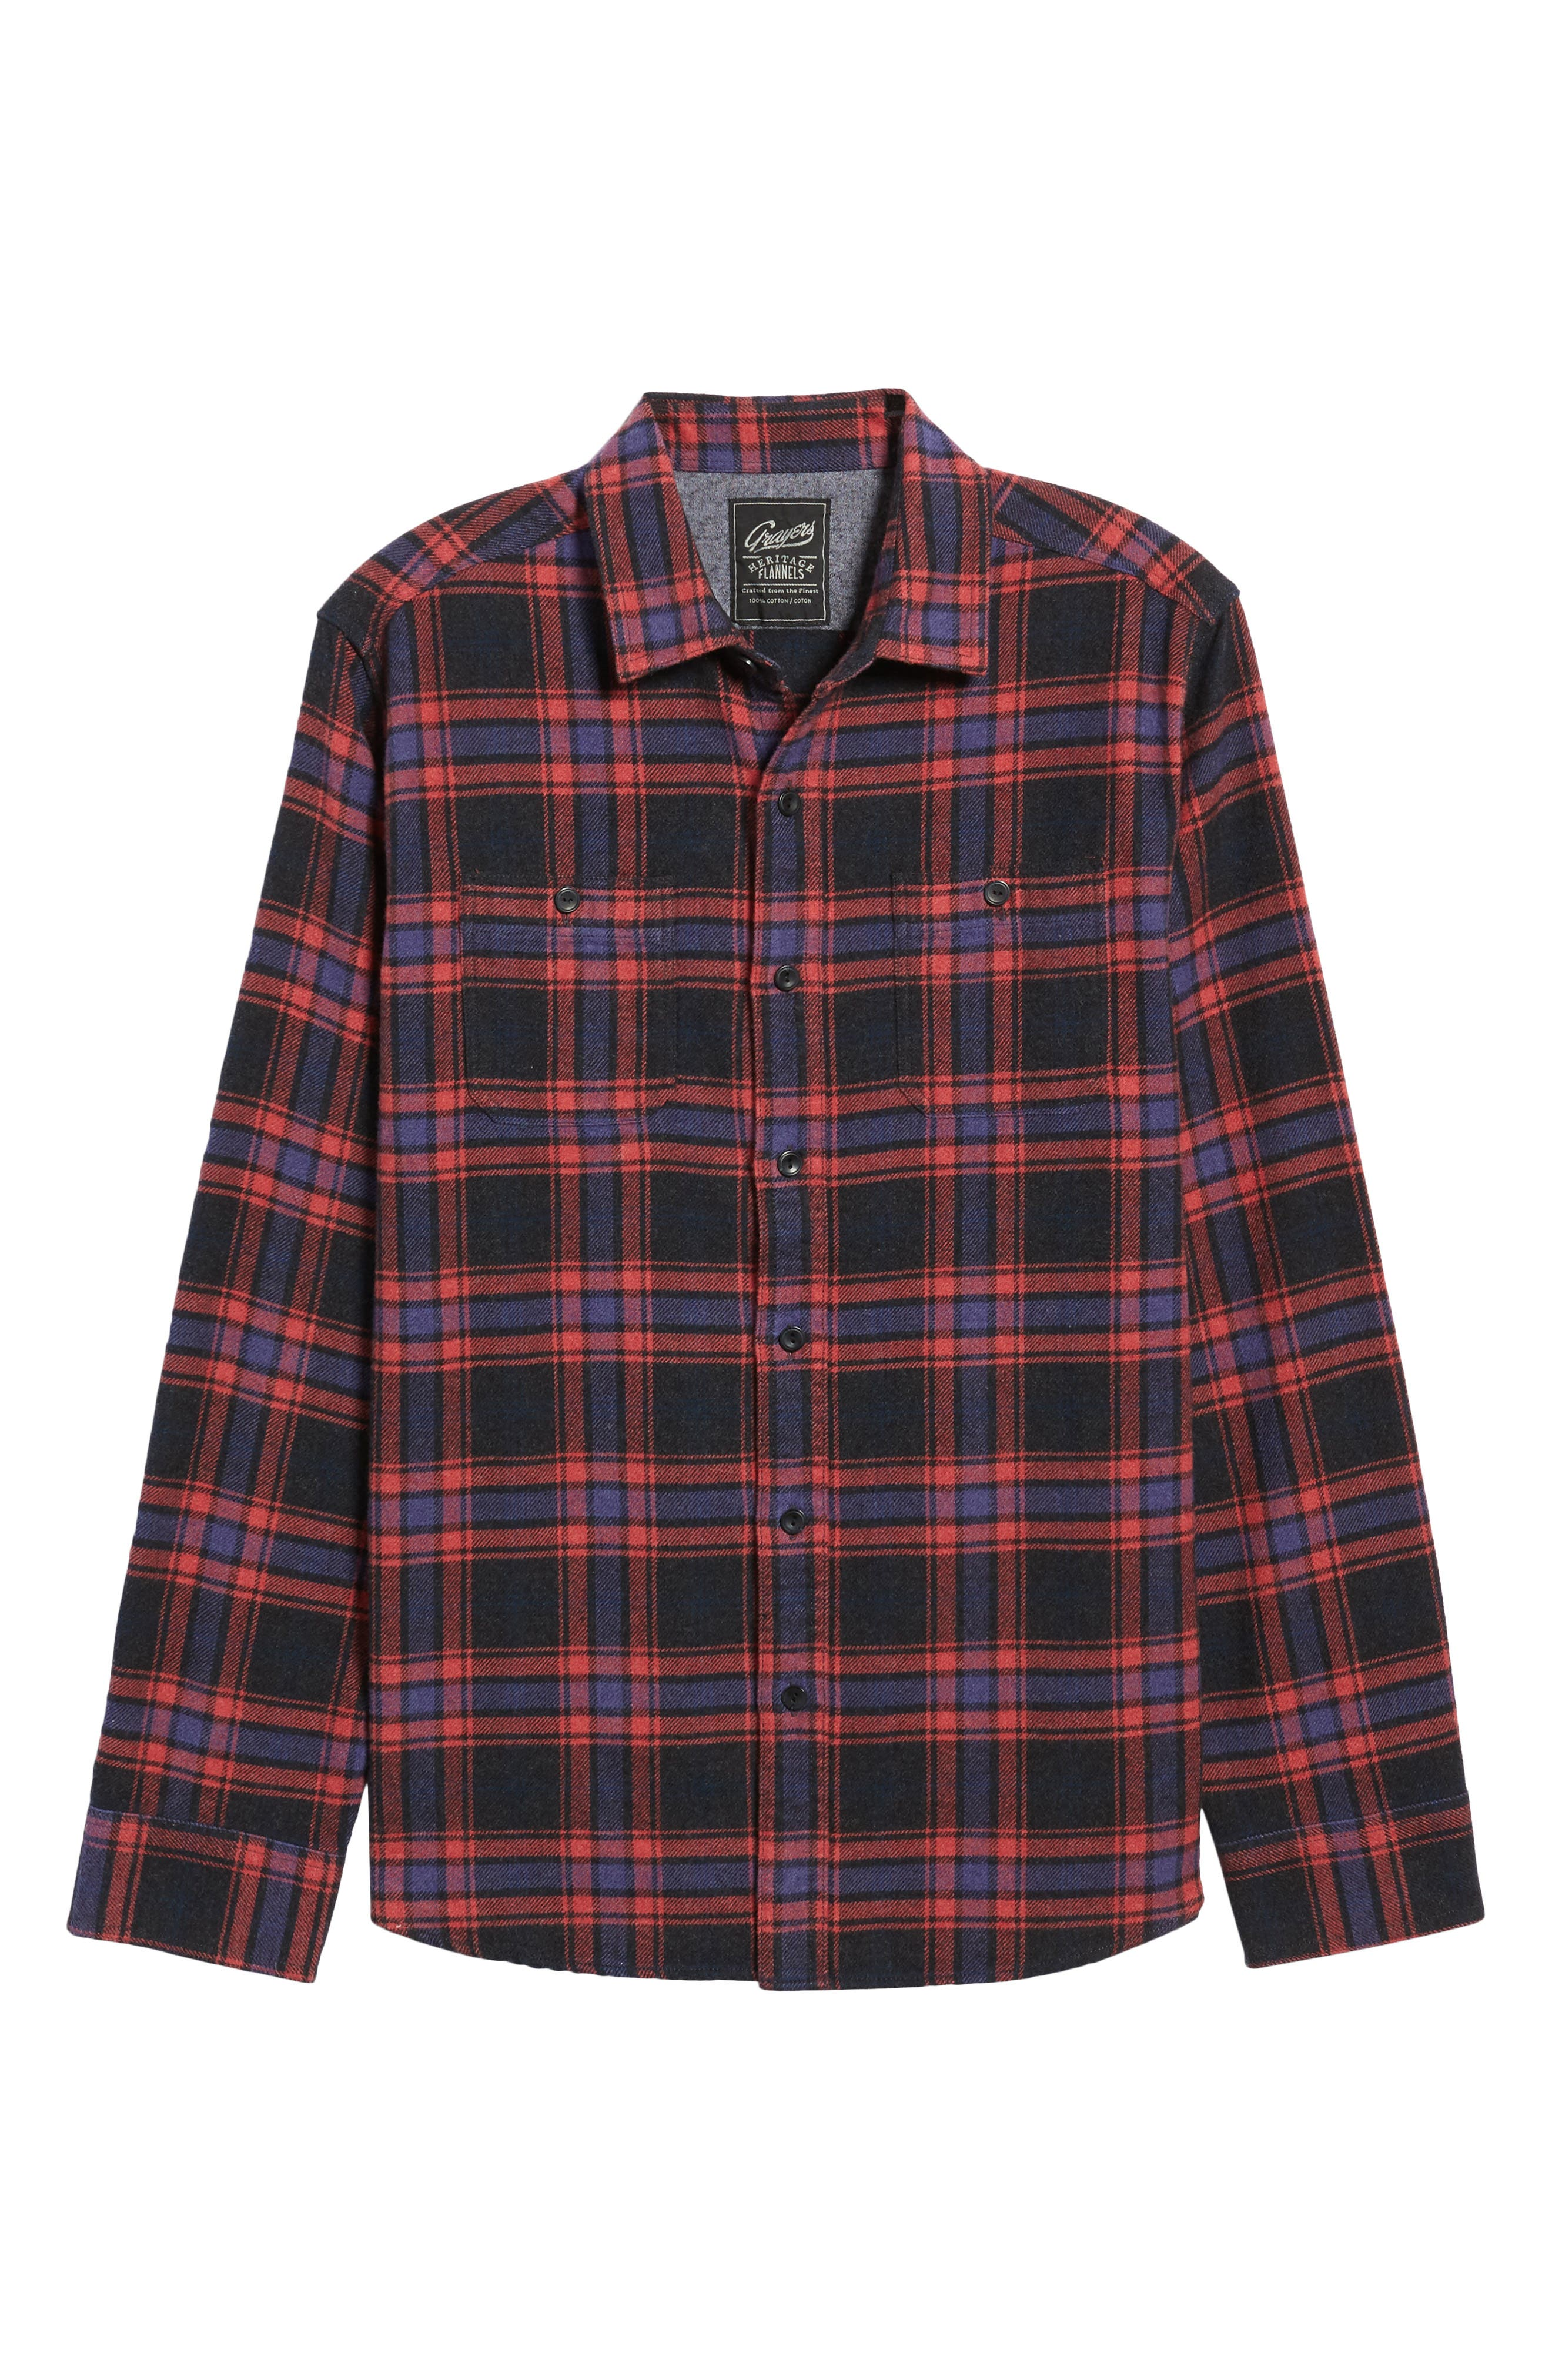 Chaucer Heritage Flannel Shirt,                             Alternate thumbnail 6, color,                             641